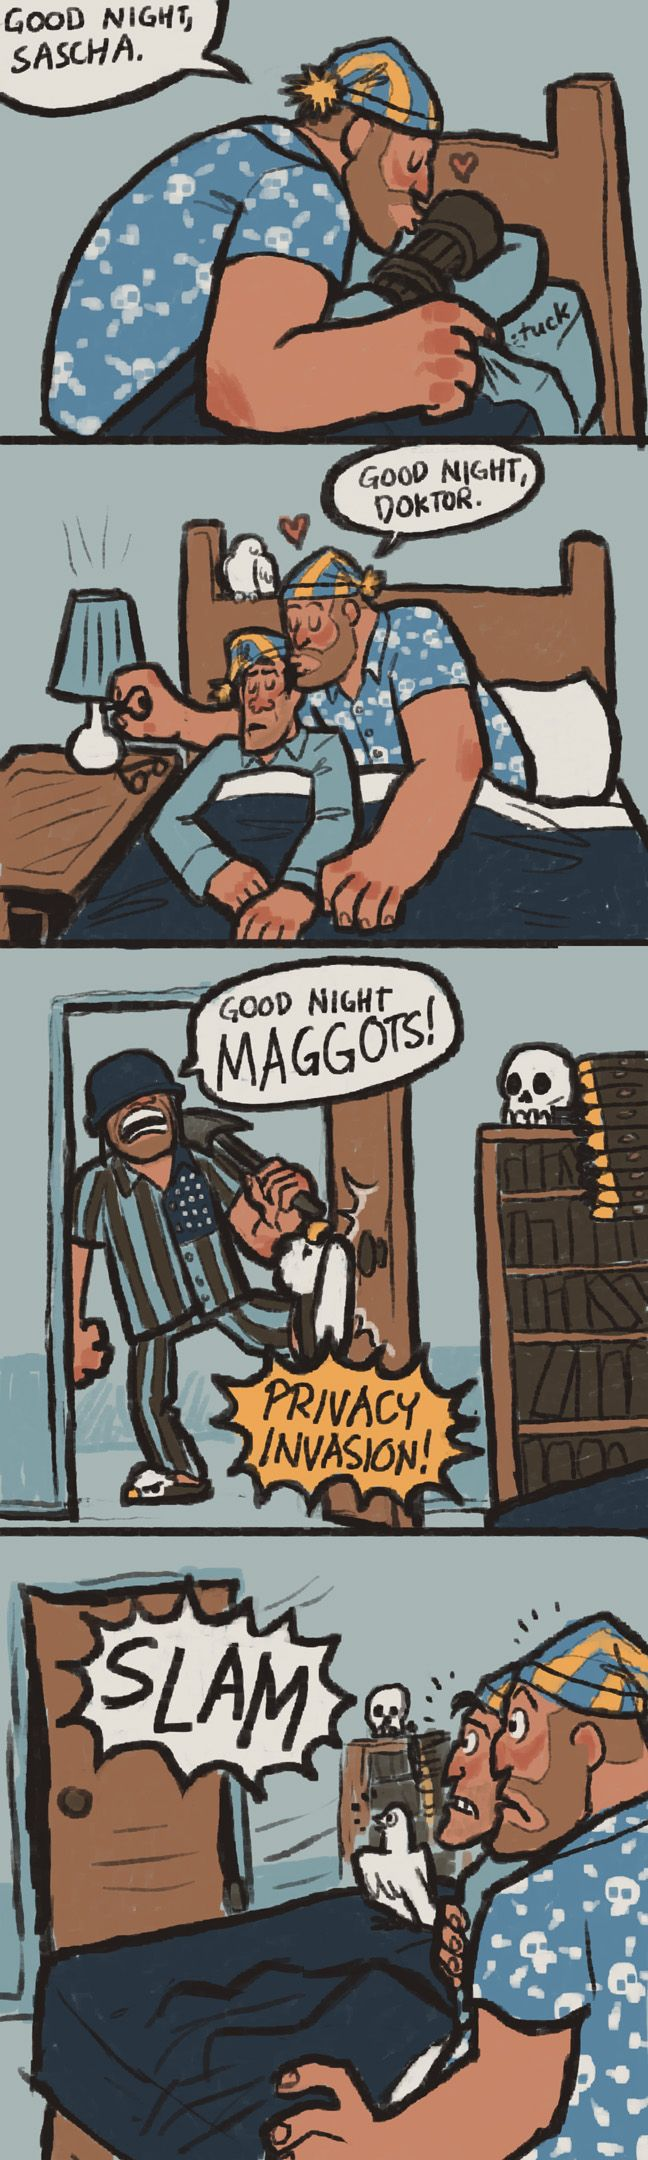 GOOD NIGHT MAGGOTS by ~TimeLordEnglish on deviantART